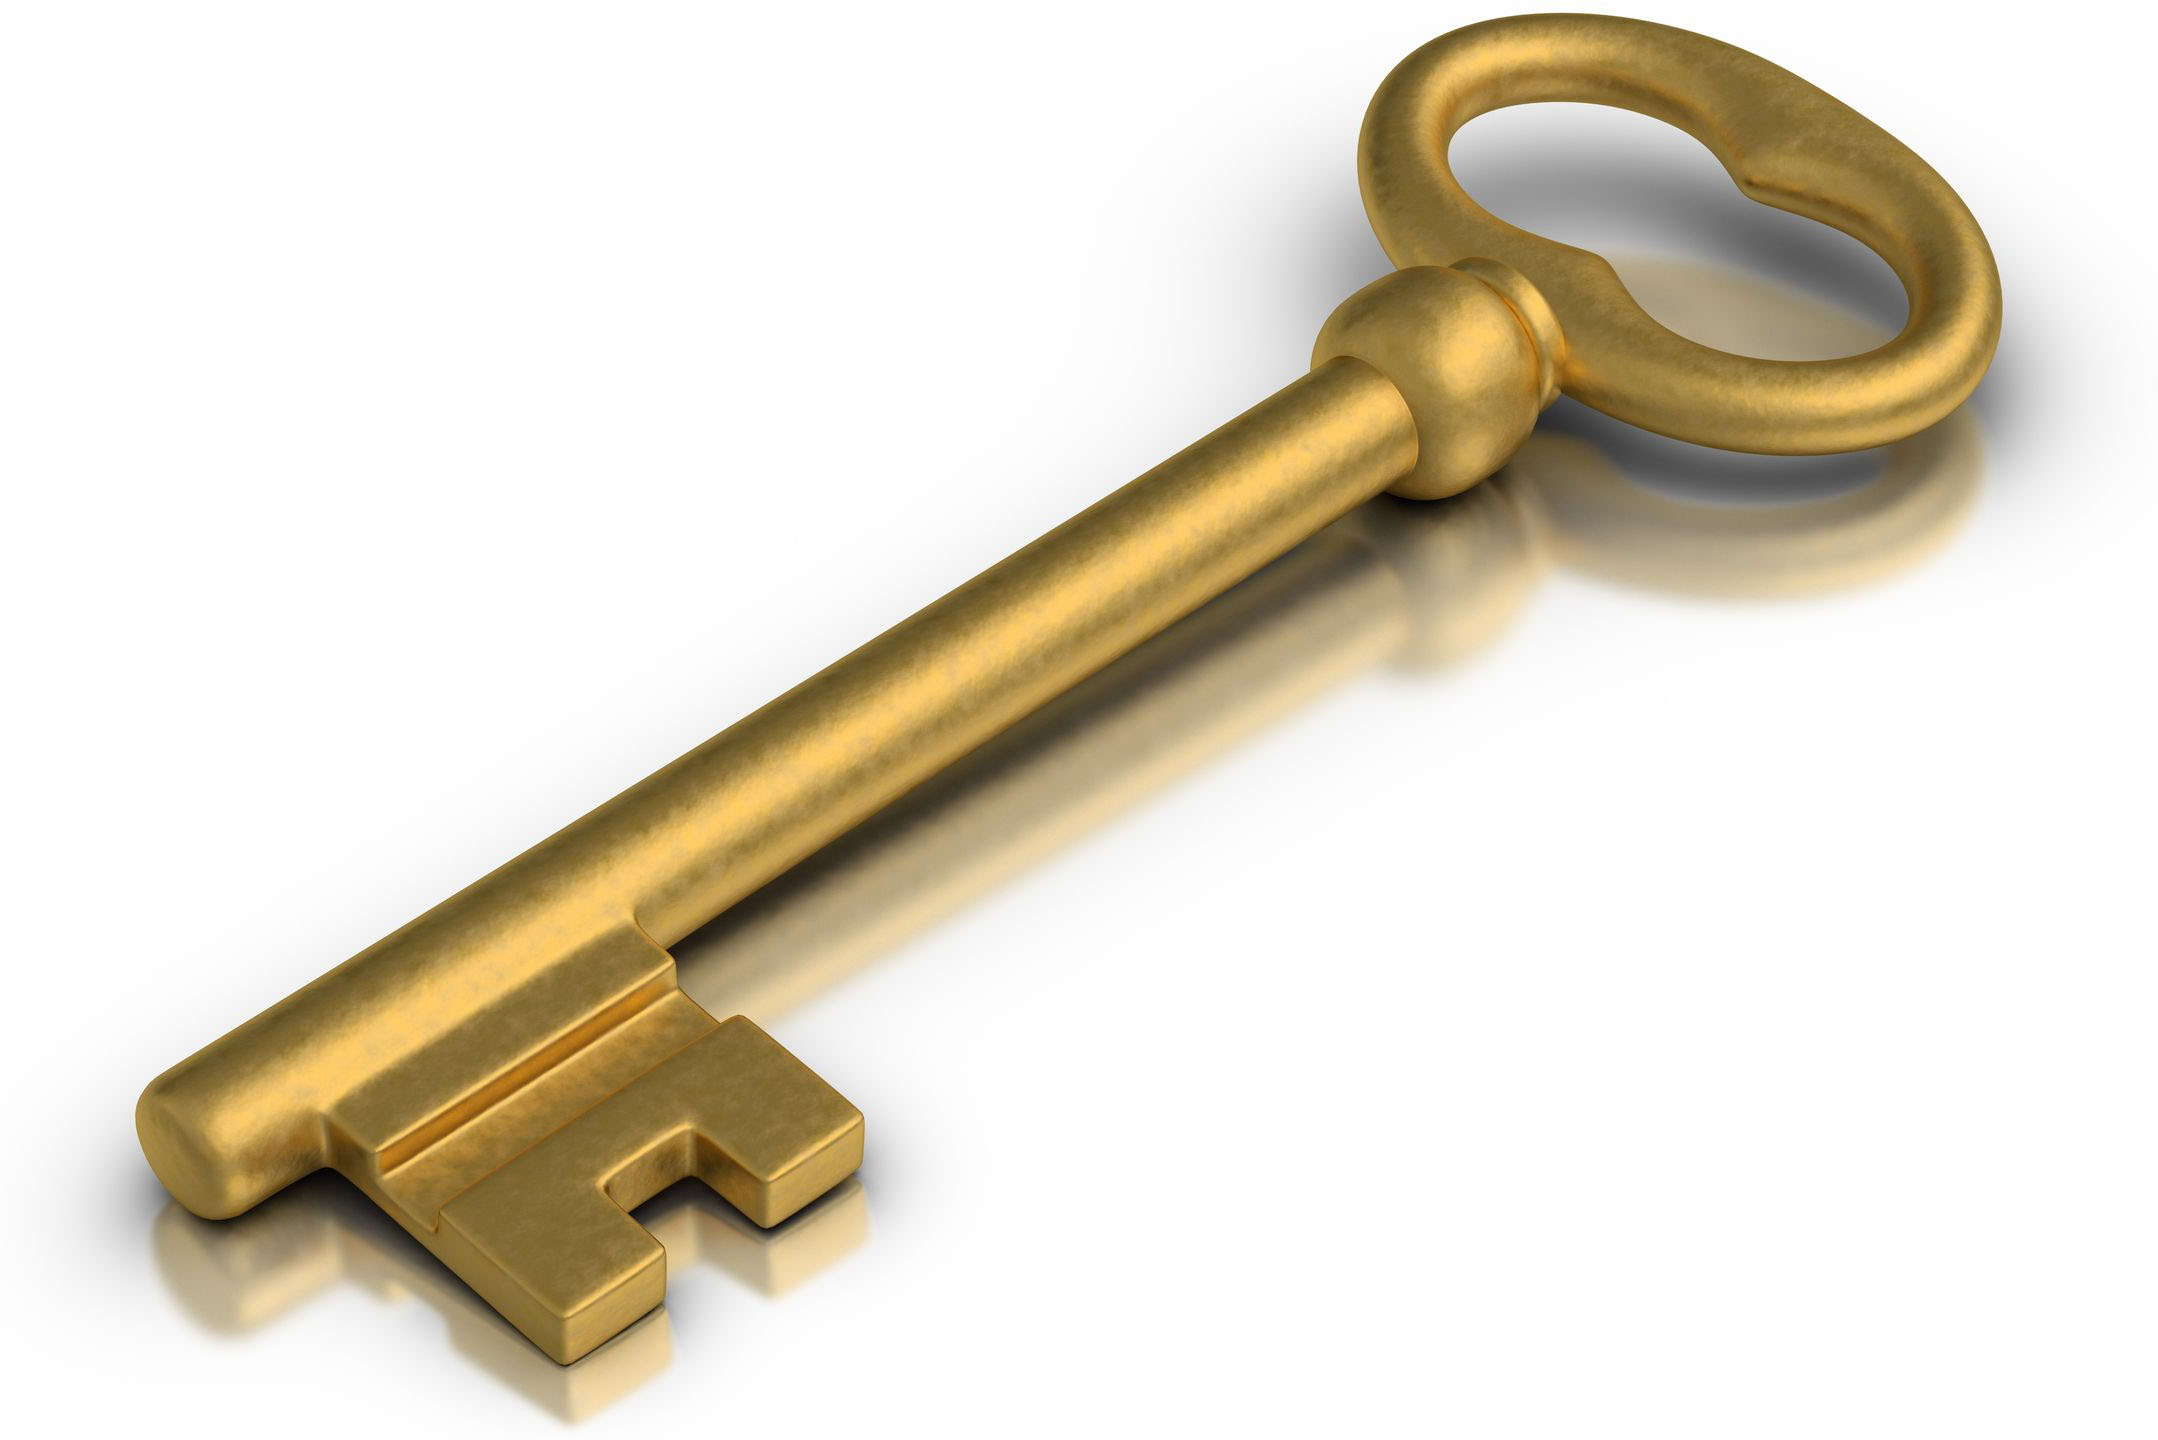 Golden Key - LIBERTY (SECURITY PRIVACY SAFETY) FREE WILL